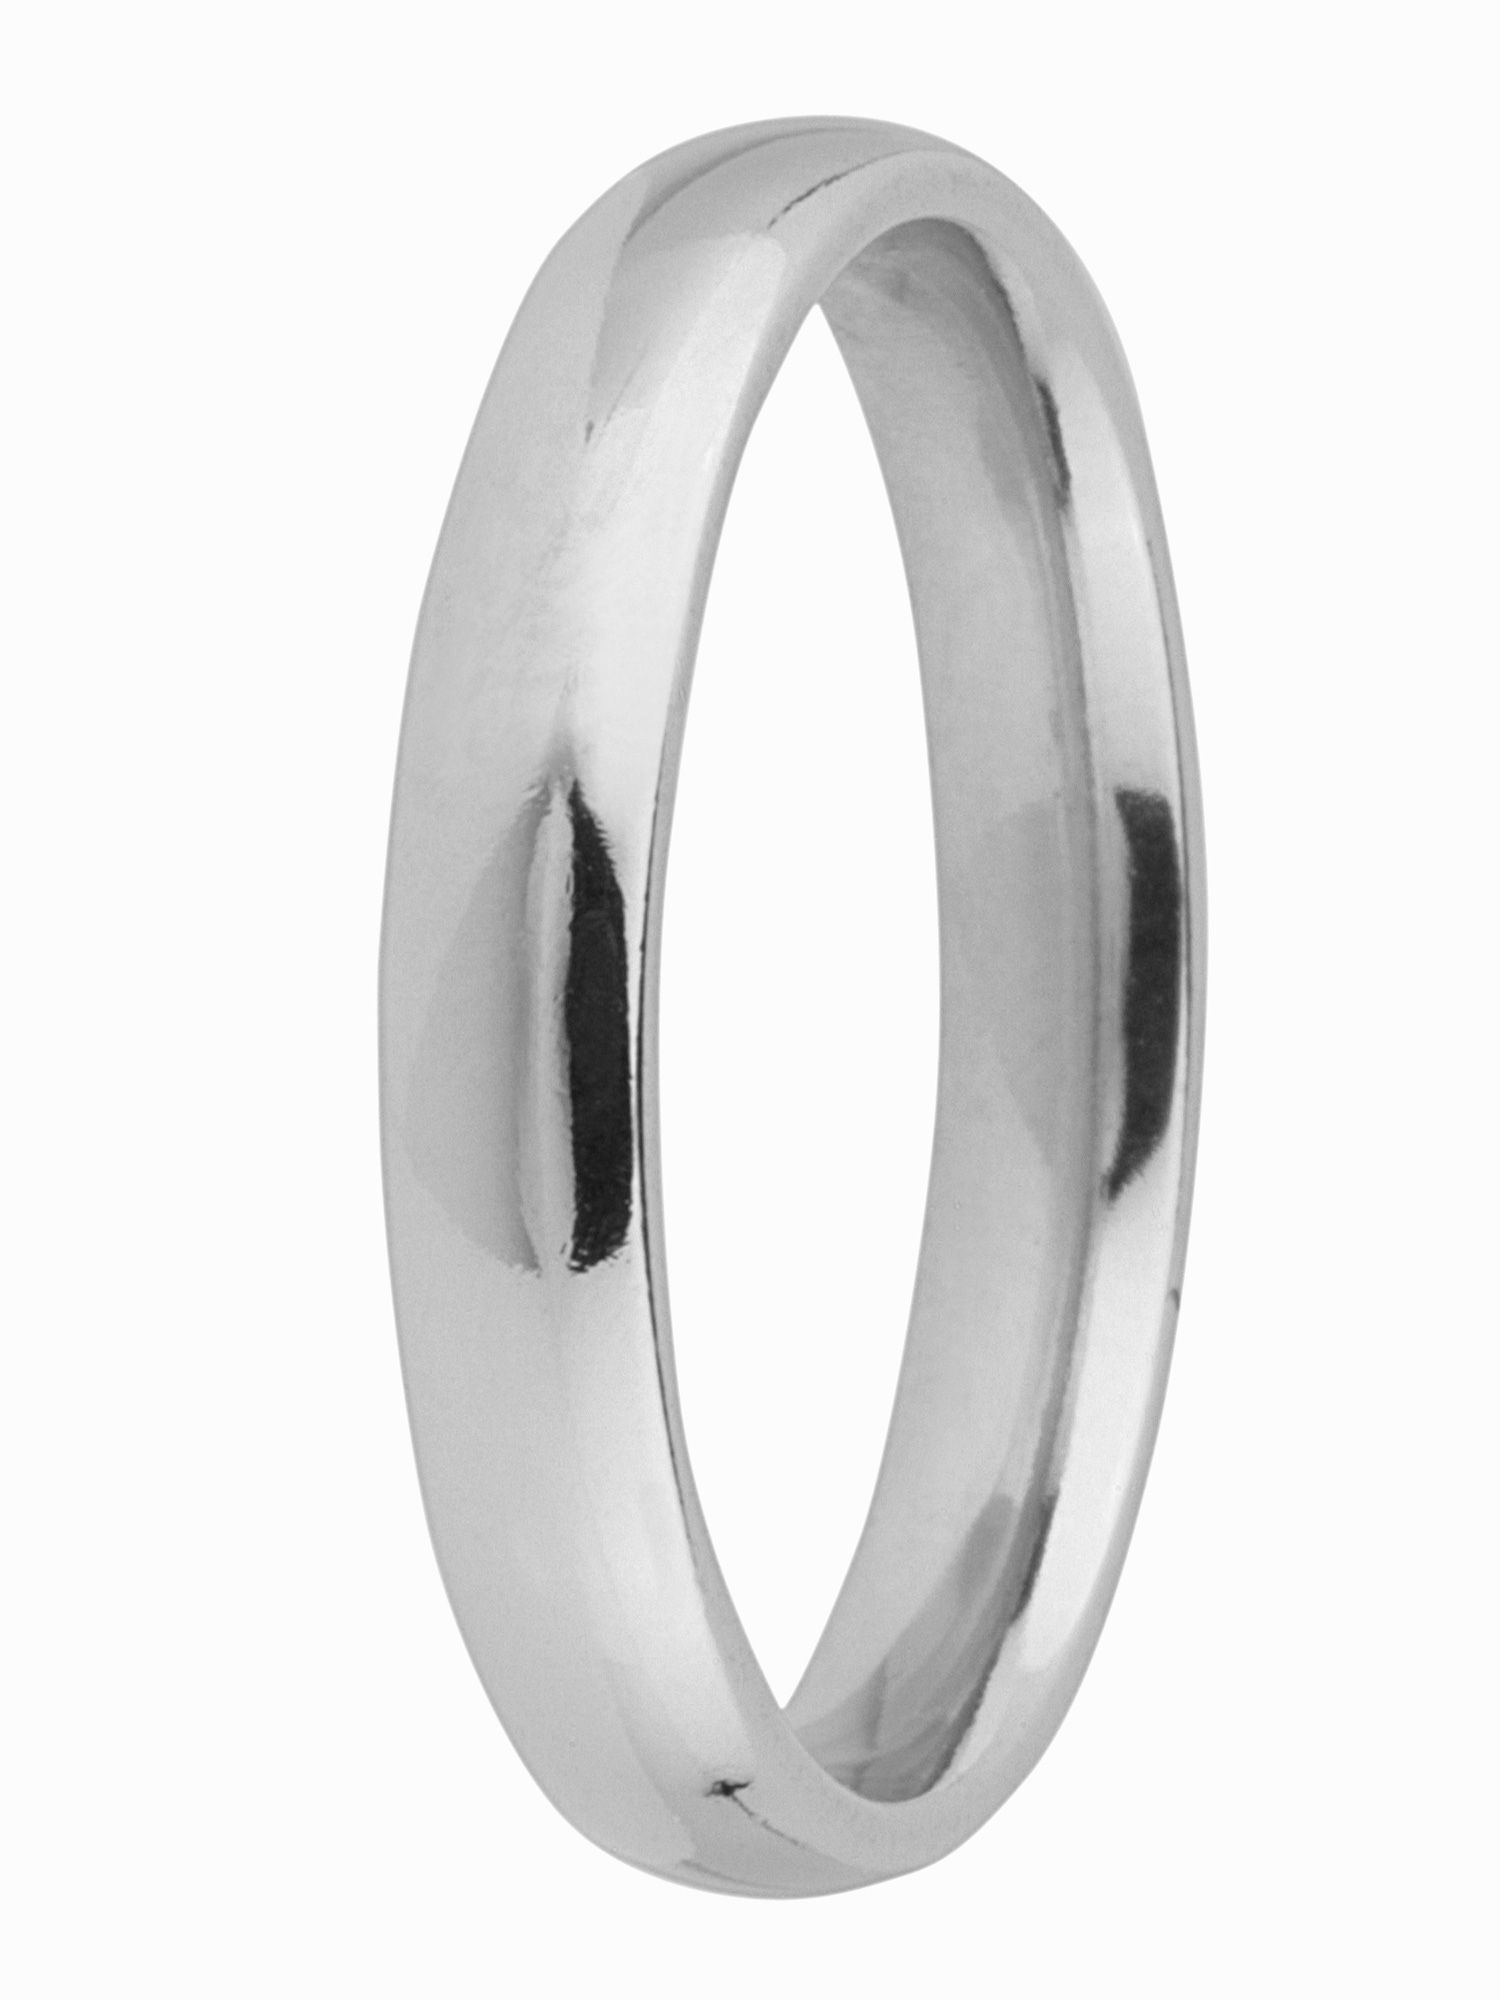 Brides platinum 3mm court wedding ring - Silver